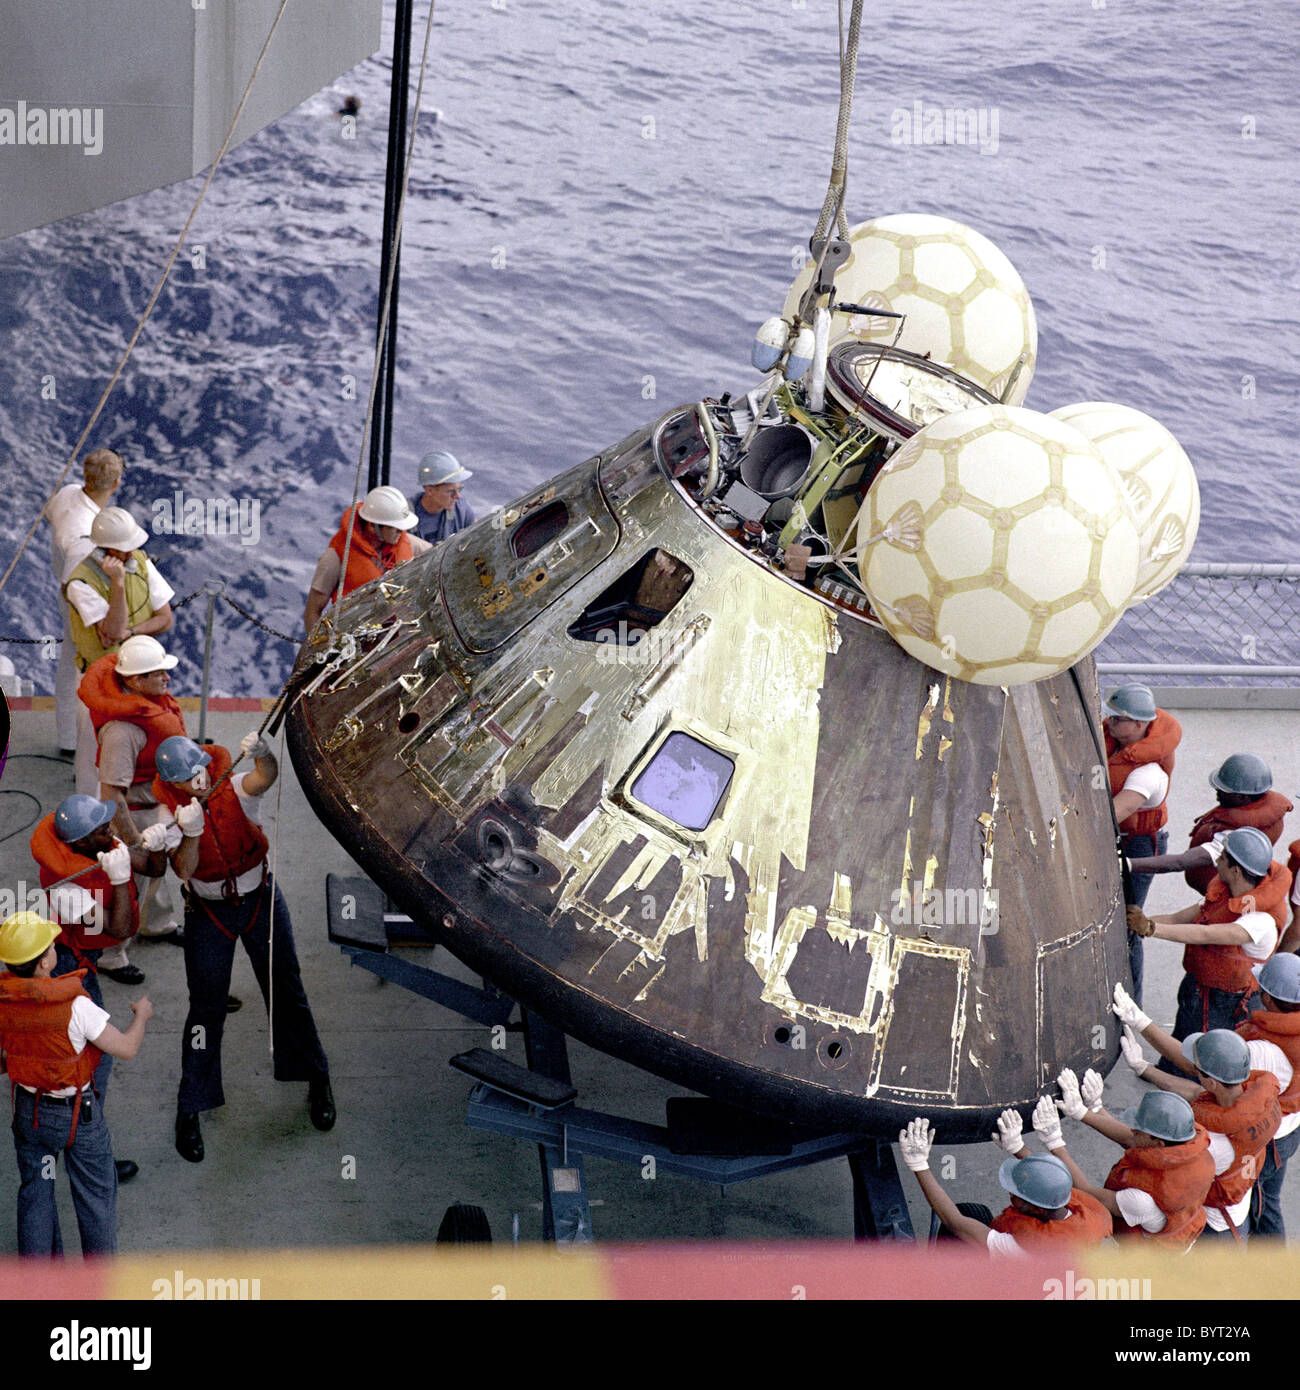 The Apollo 13 spacecraft Command Module is hoisted onto the recovery ship after splashdown. - Stock Image